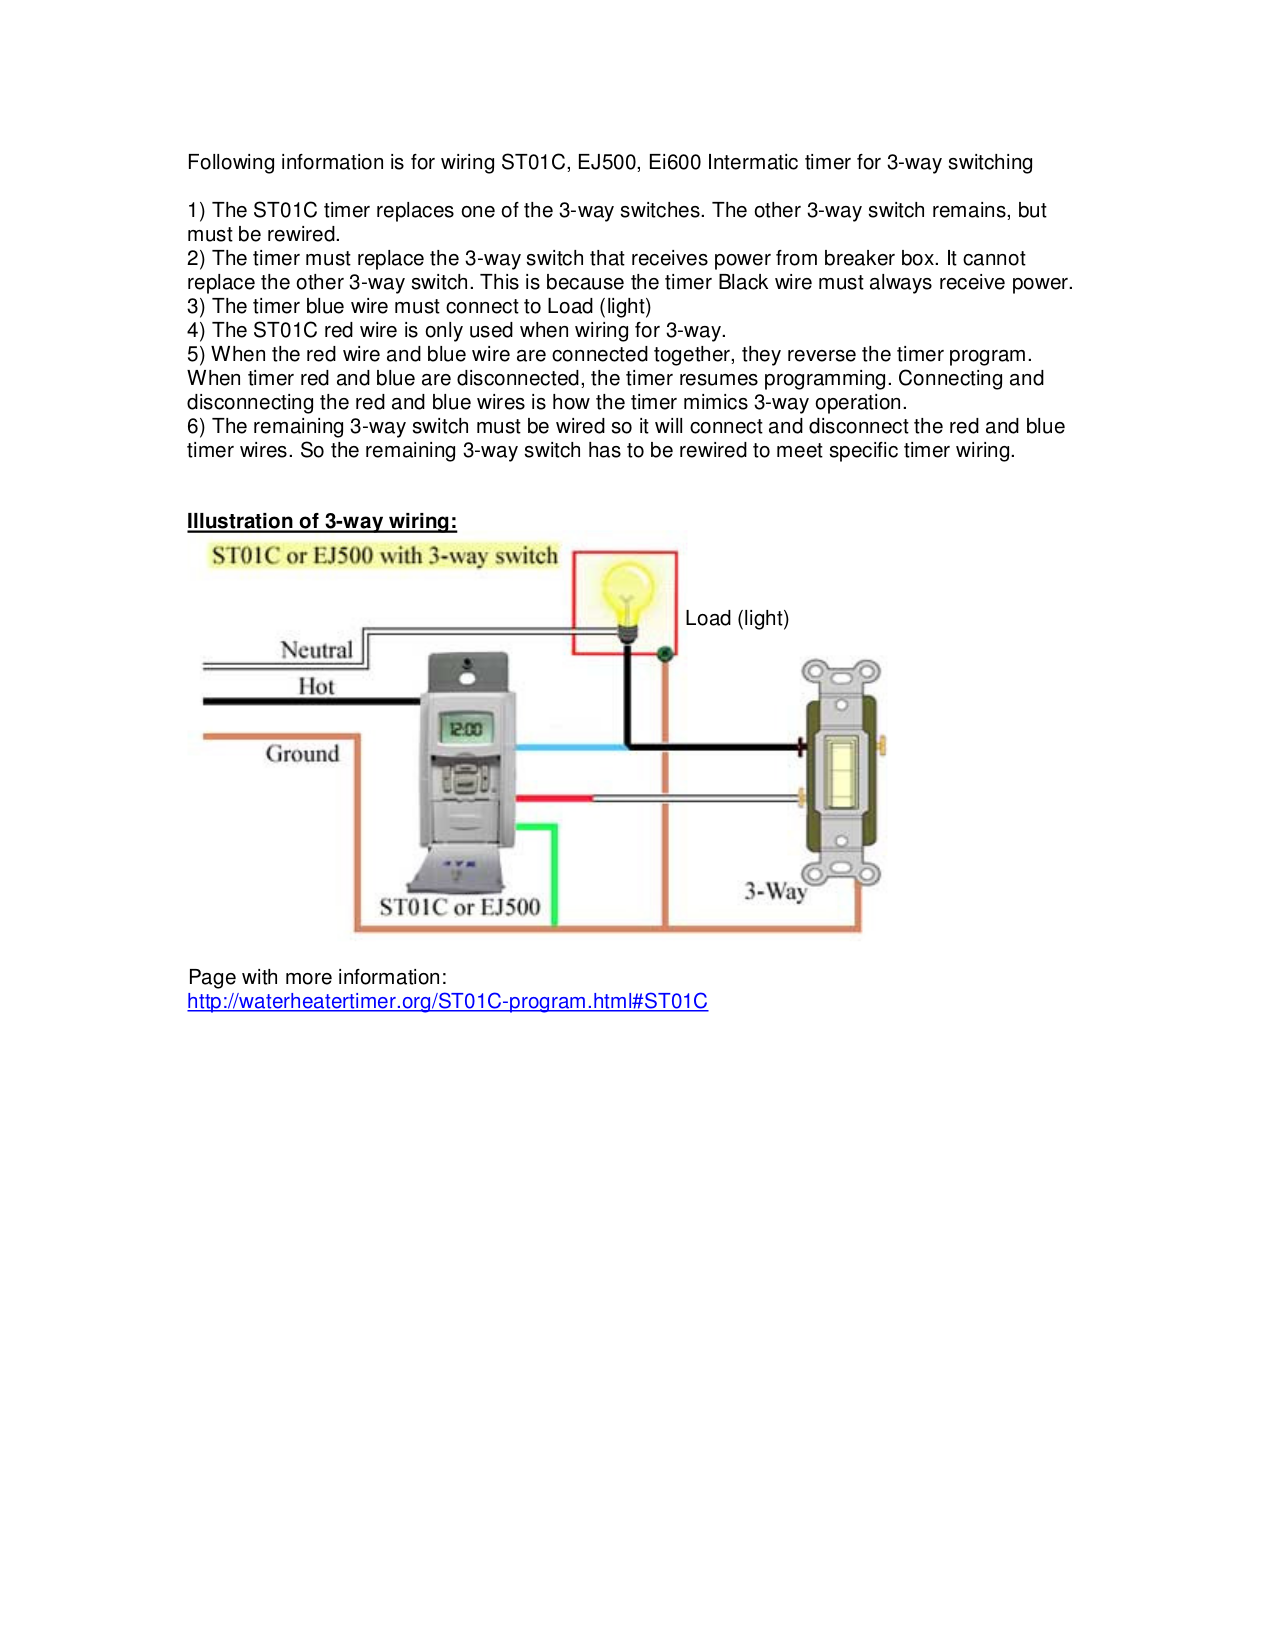 Download Free Pdf For Intermatic Ej500 Timers Other Manual 3 Way Switch Explanation